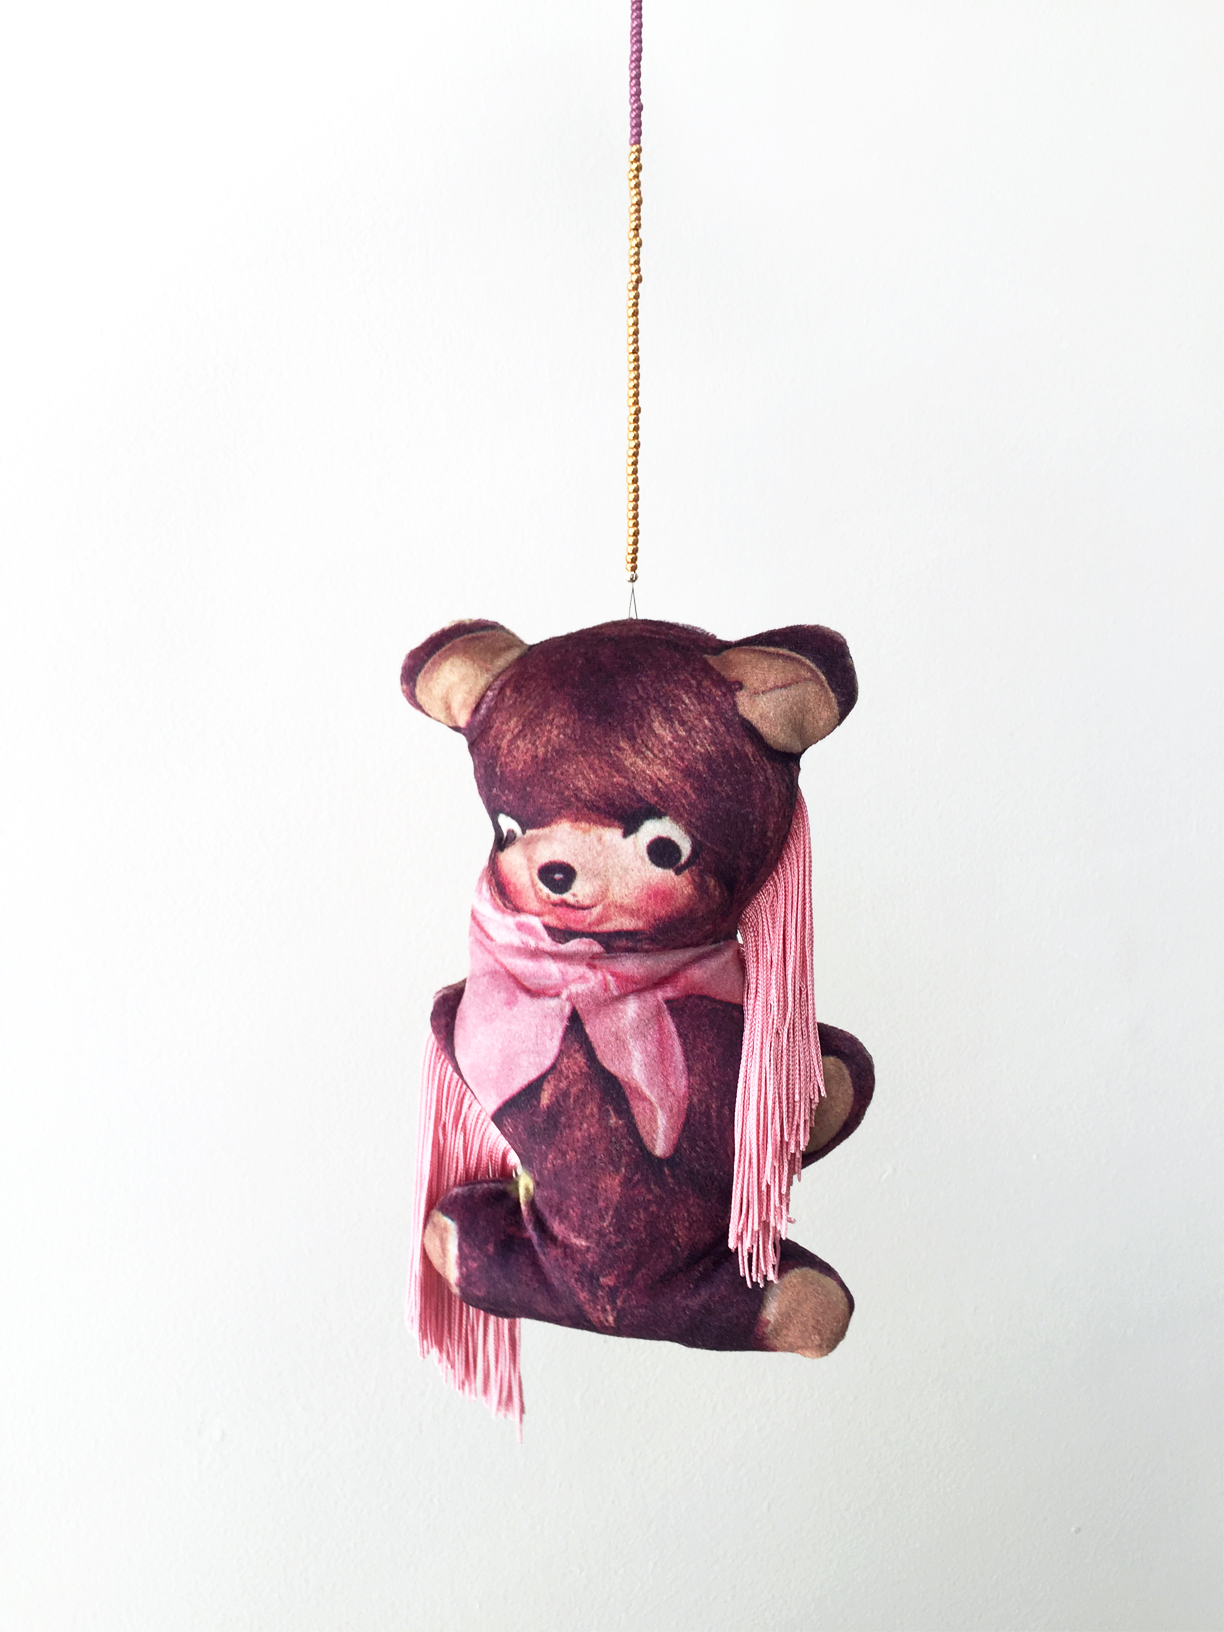 (How to) Make a Bear, 2019, digitally printed velvet, found image, polyester, wool, glass beads